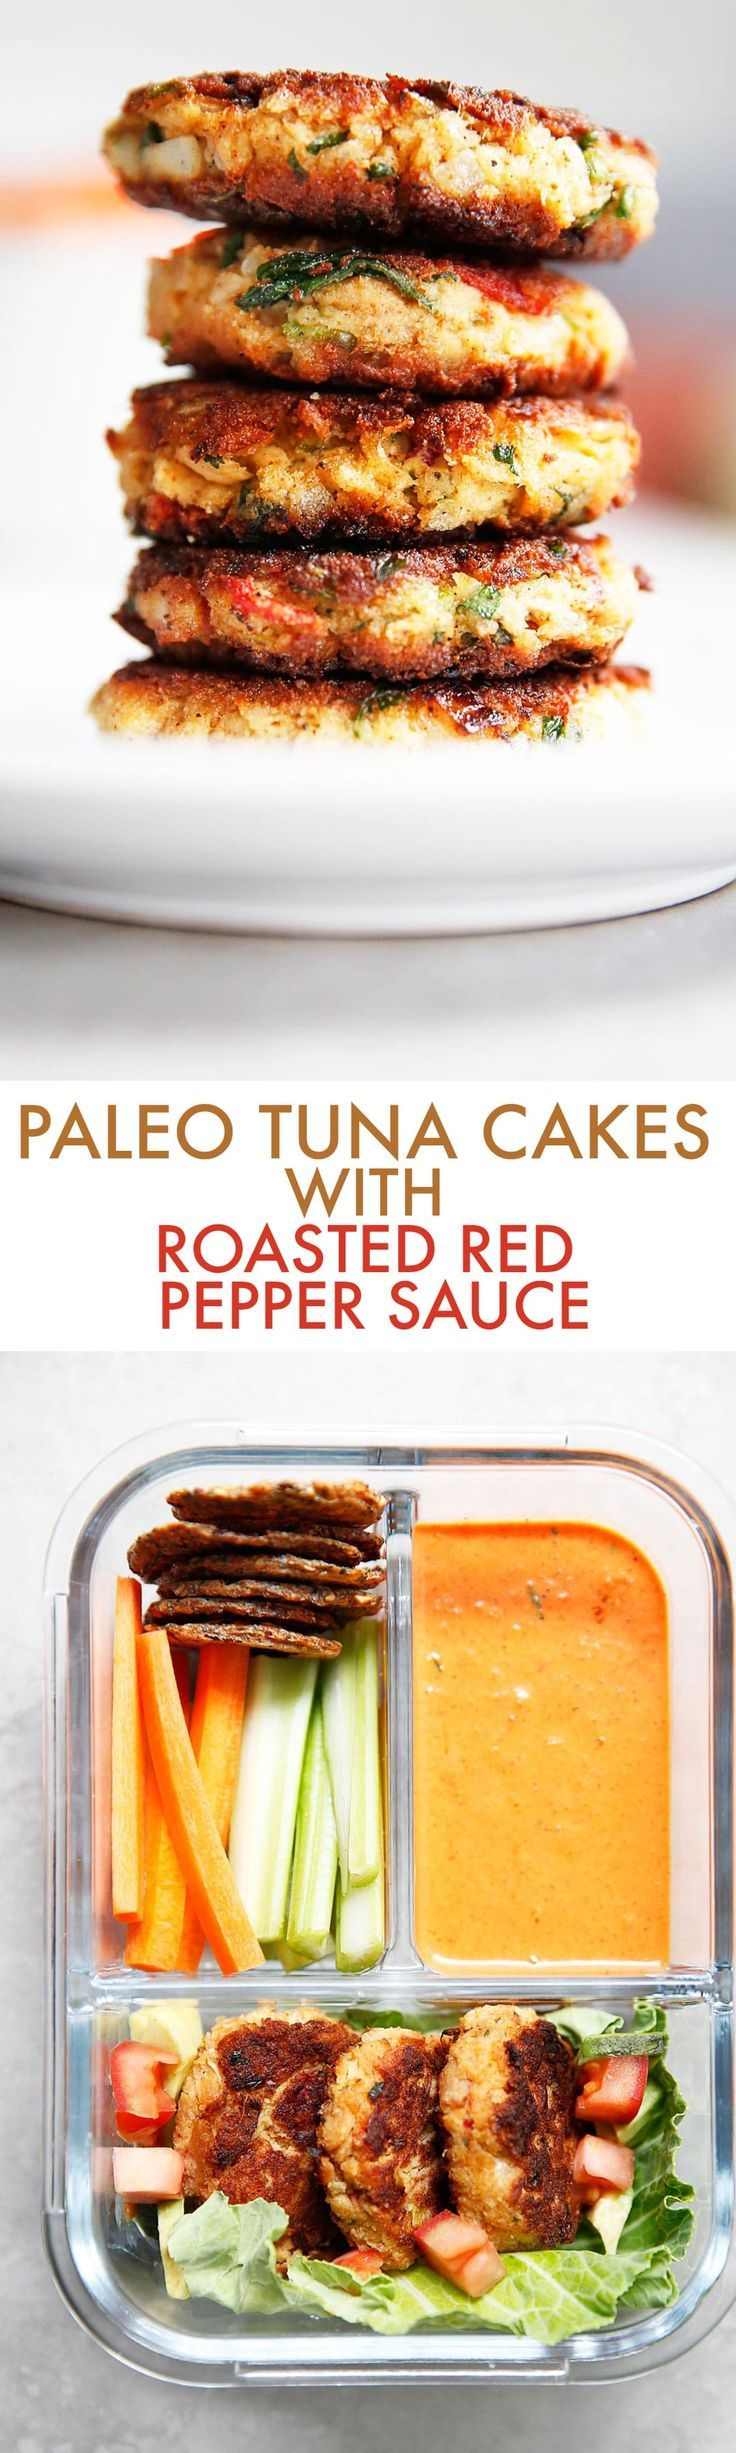 Paleo Tuna Cakes Low Carb With Roasted Red Pepper Sauce Recipe Paleo Tuna Cakes Paleo Tuna Tuna Cakes [ 2453 x 736 Pixel ]